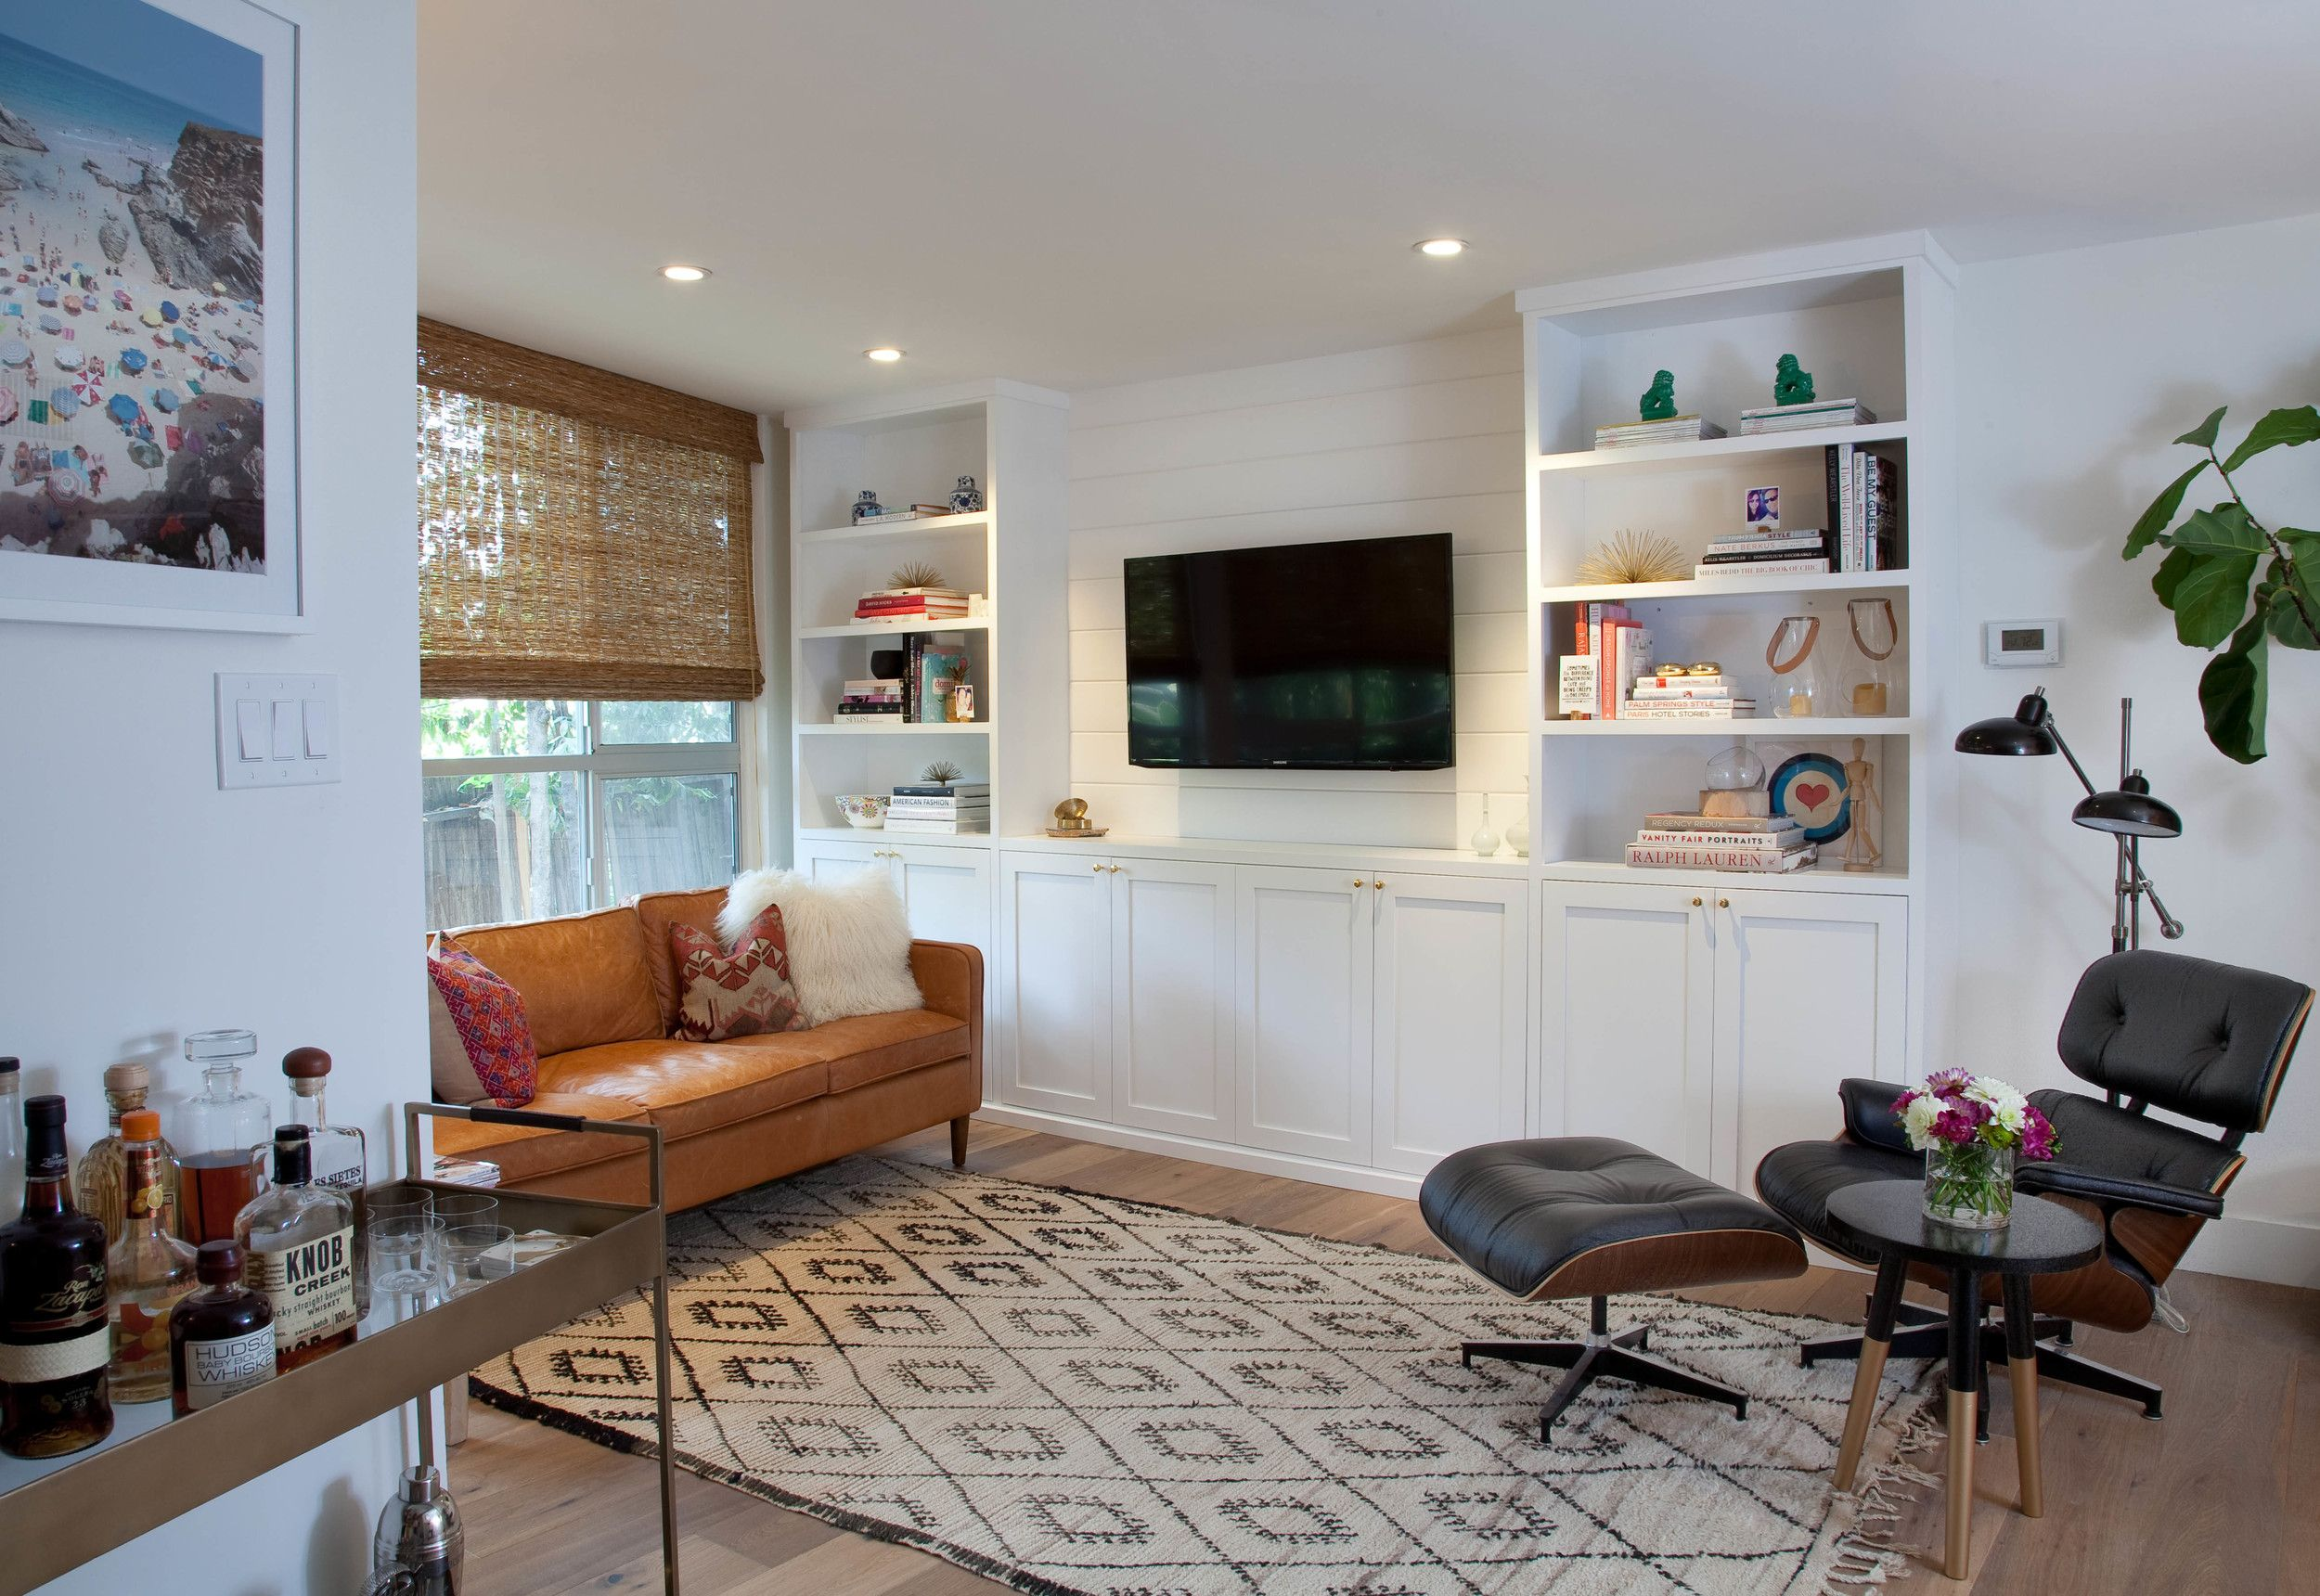 Home Interior Design Blogs Remodelling Eclectic Glam Condo Remodel  Before & Afters  Condo Remodel .